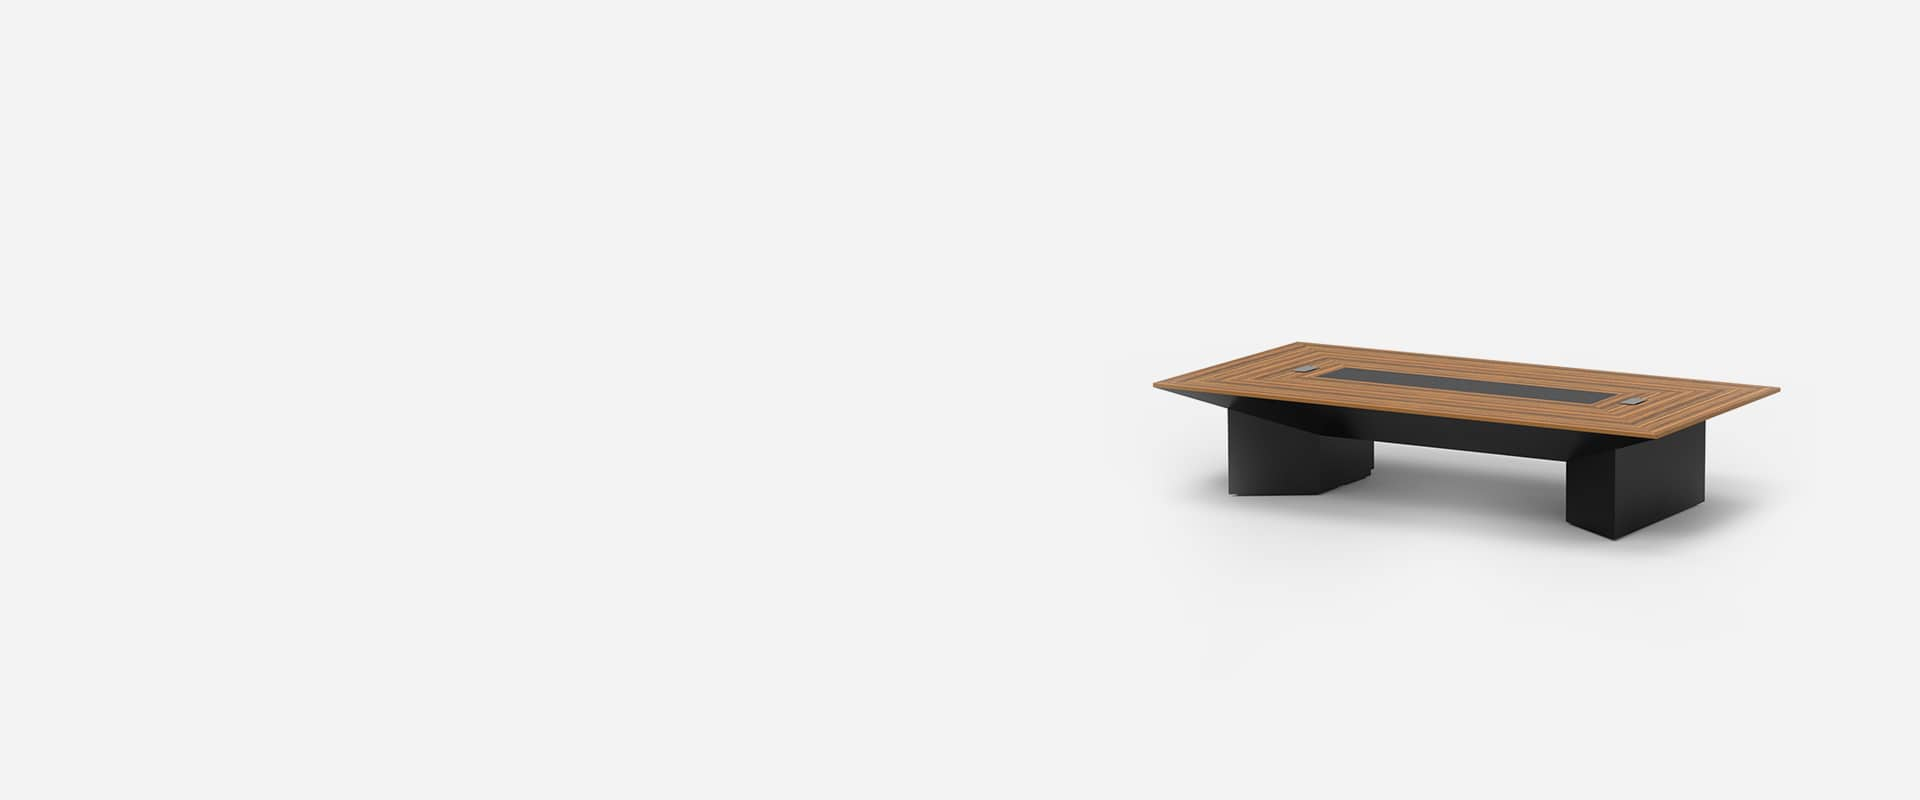 Status Conference Tables